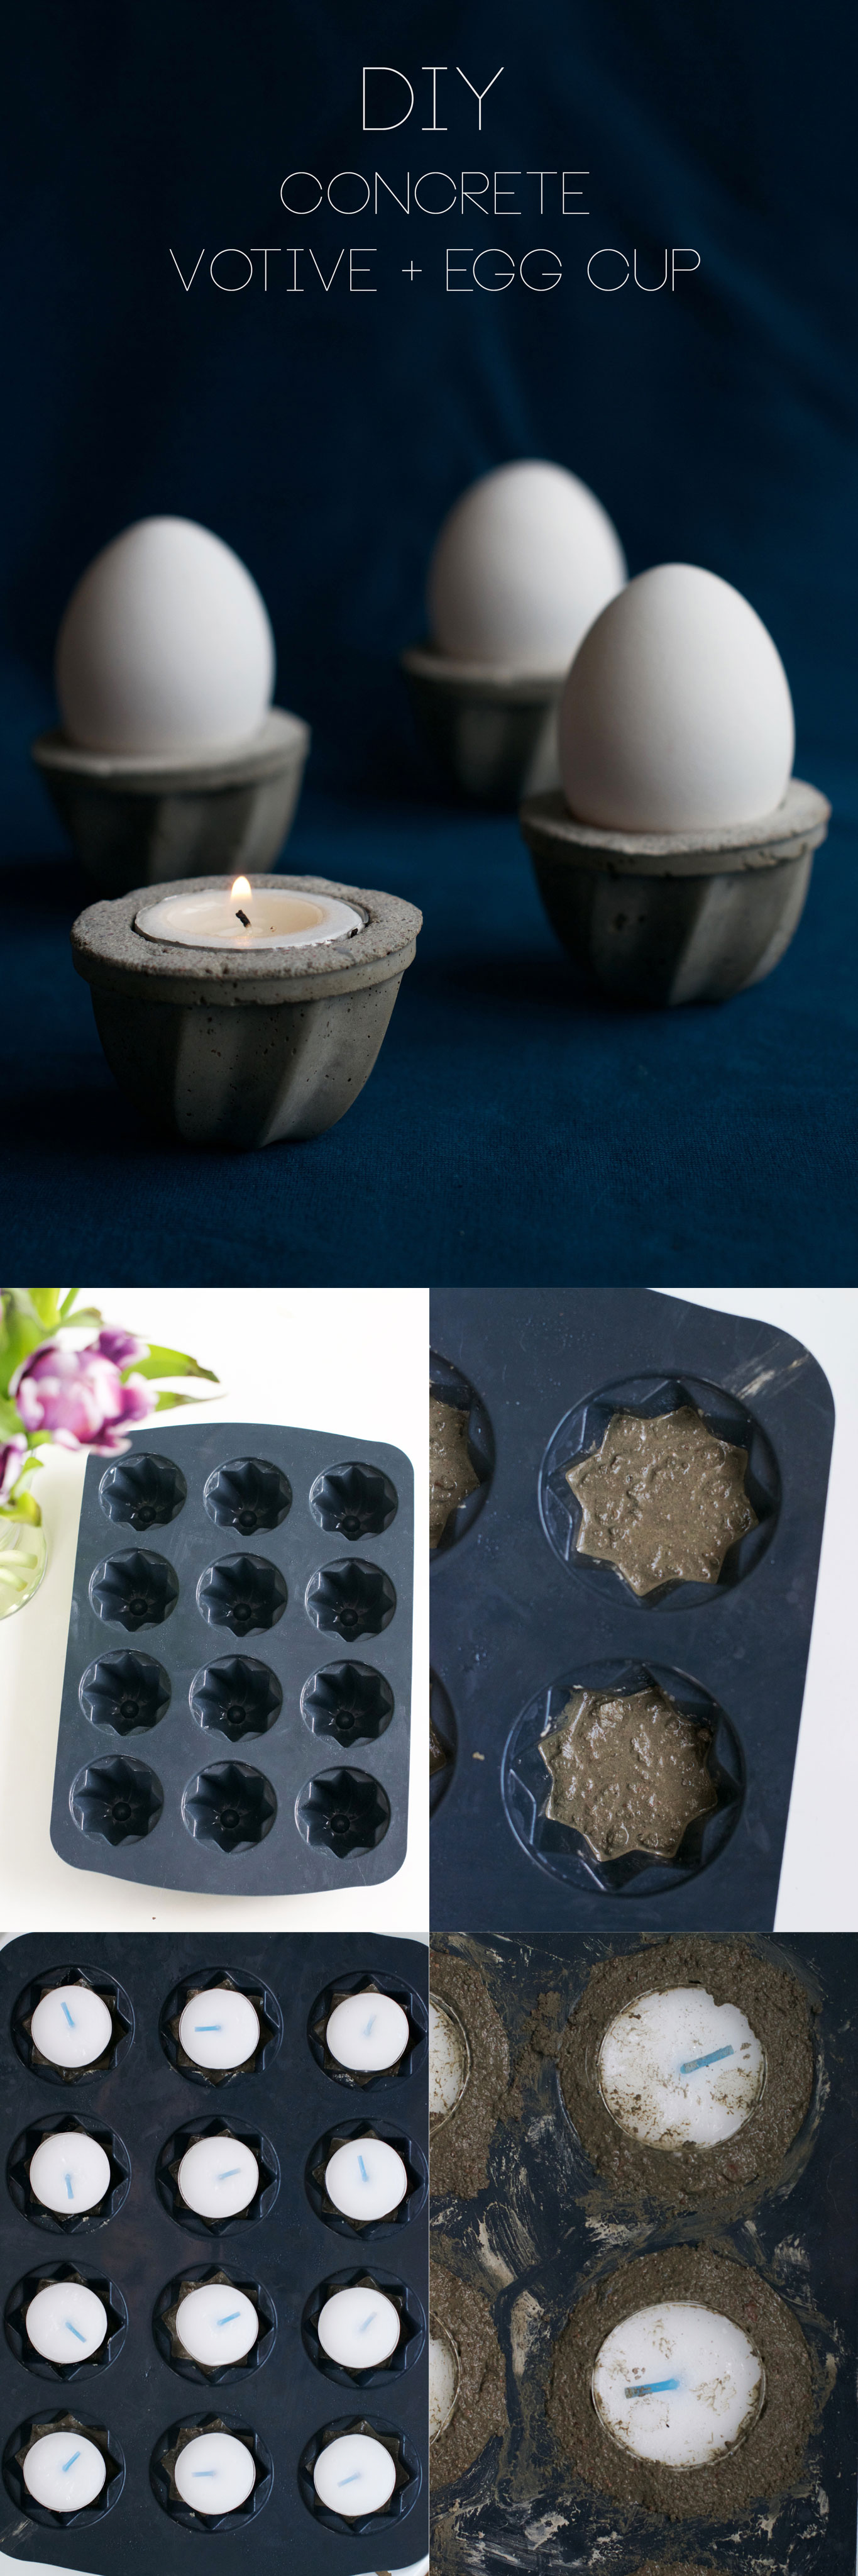 DIY Concrete Votive and Egg Cup Step-by-Step Tutorial | HungryHeart.se